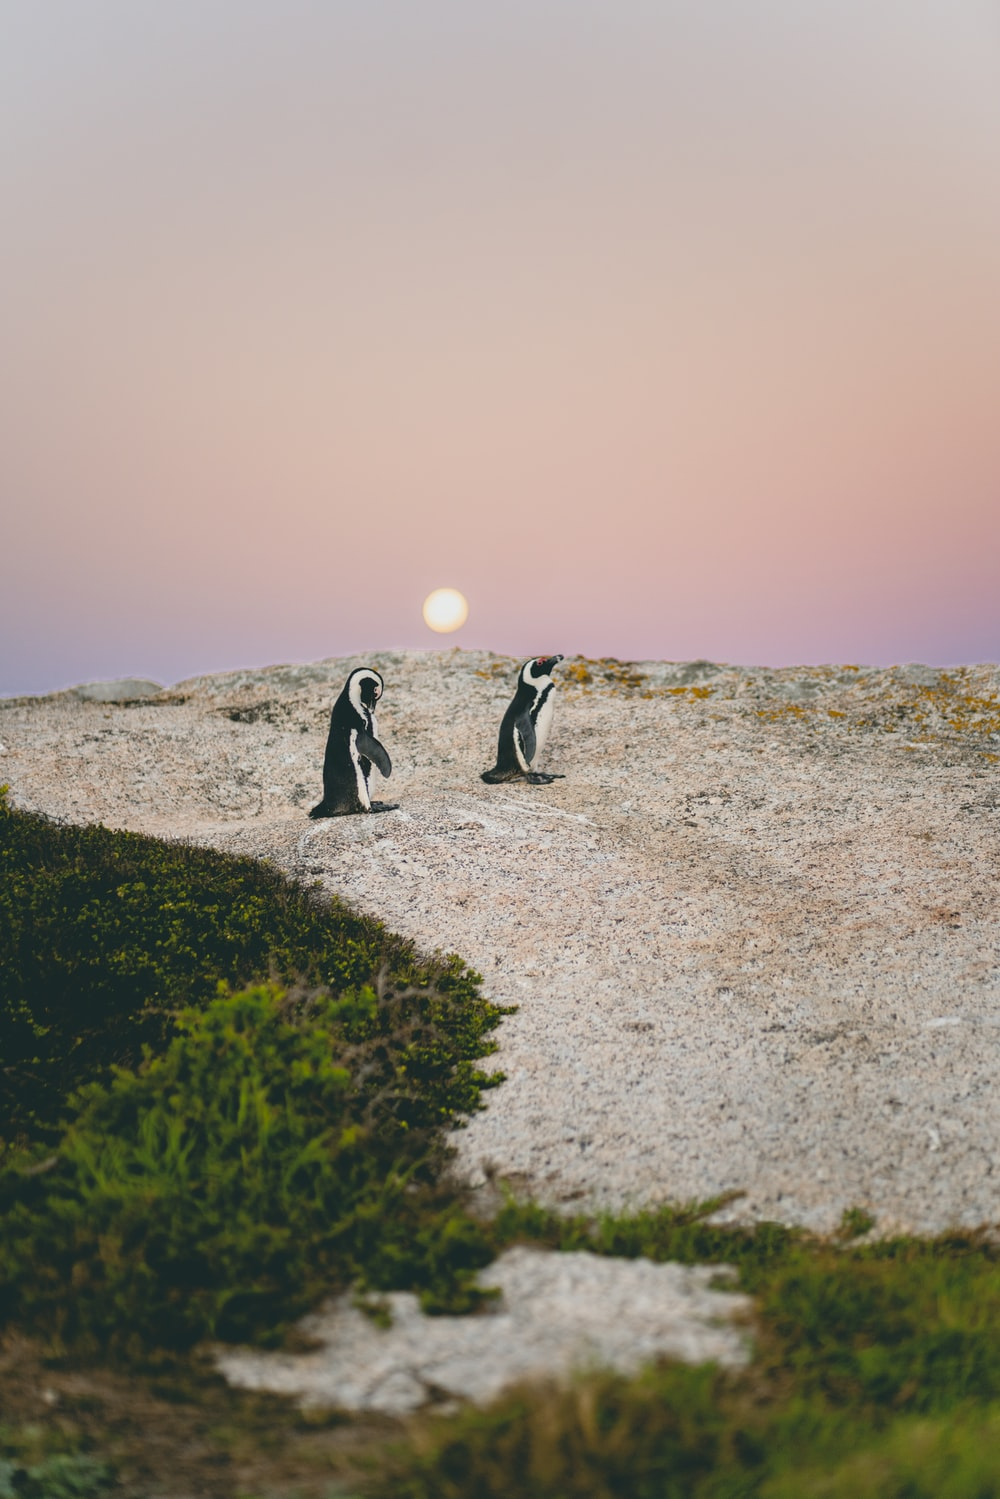 two penguin walking at the shore during daytime